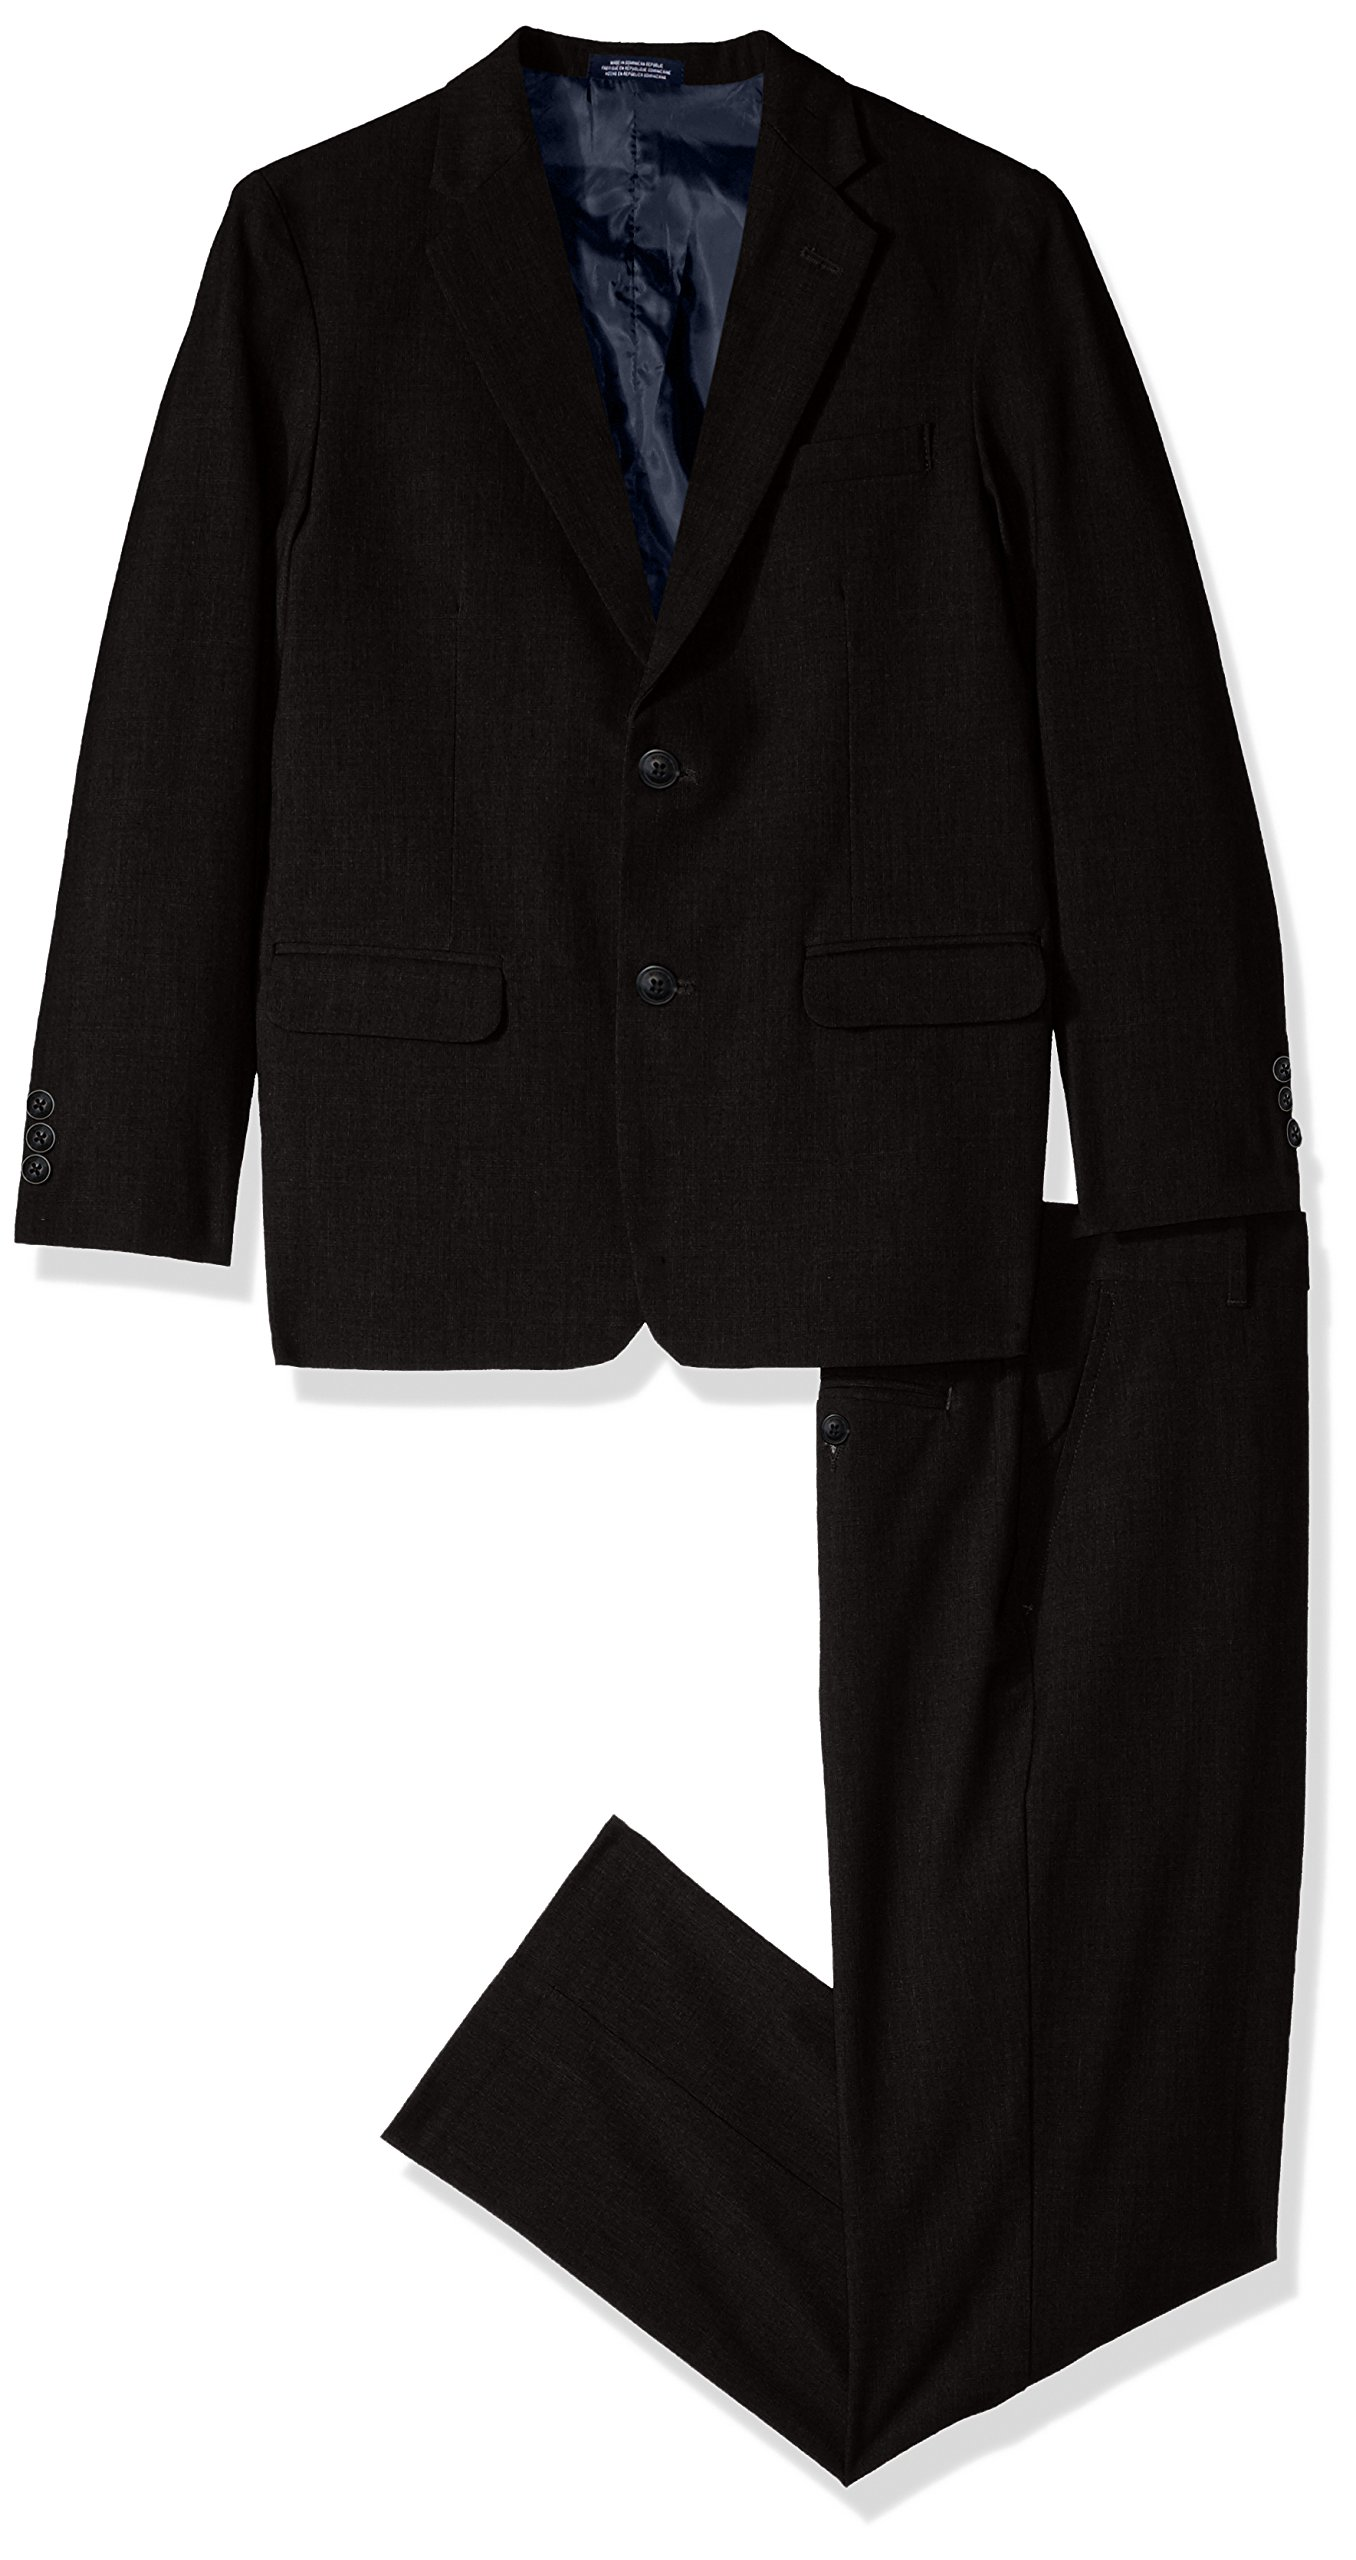 Nautica Big Boys' Two Piece Suit Set with Hemmed Pants, Black, 18